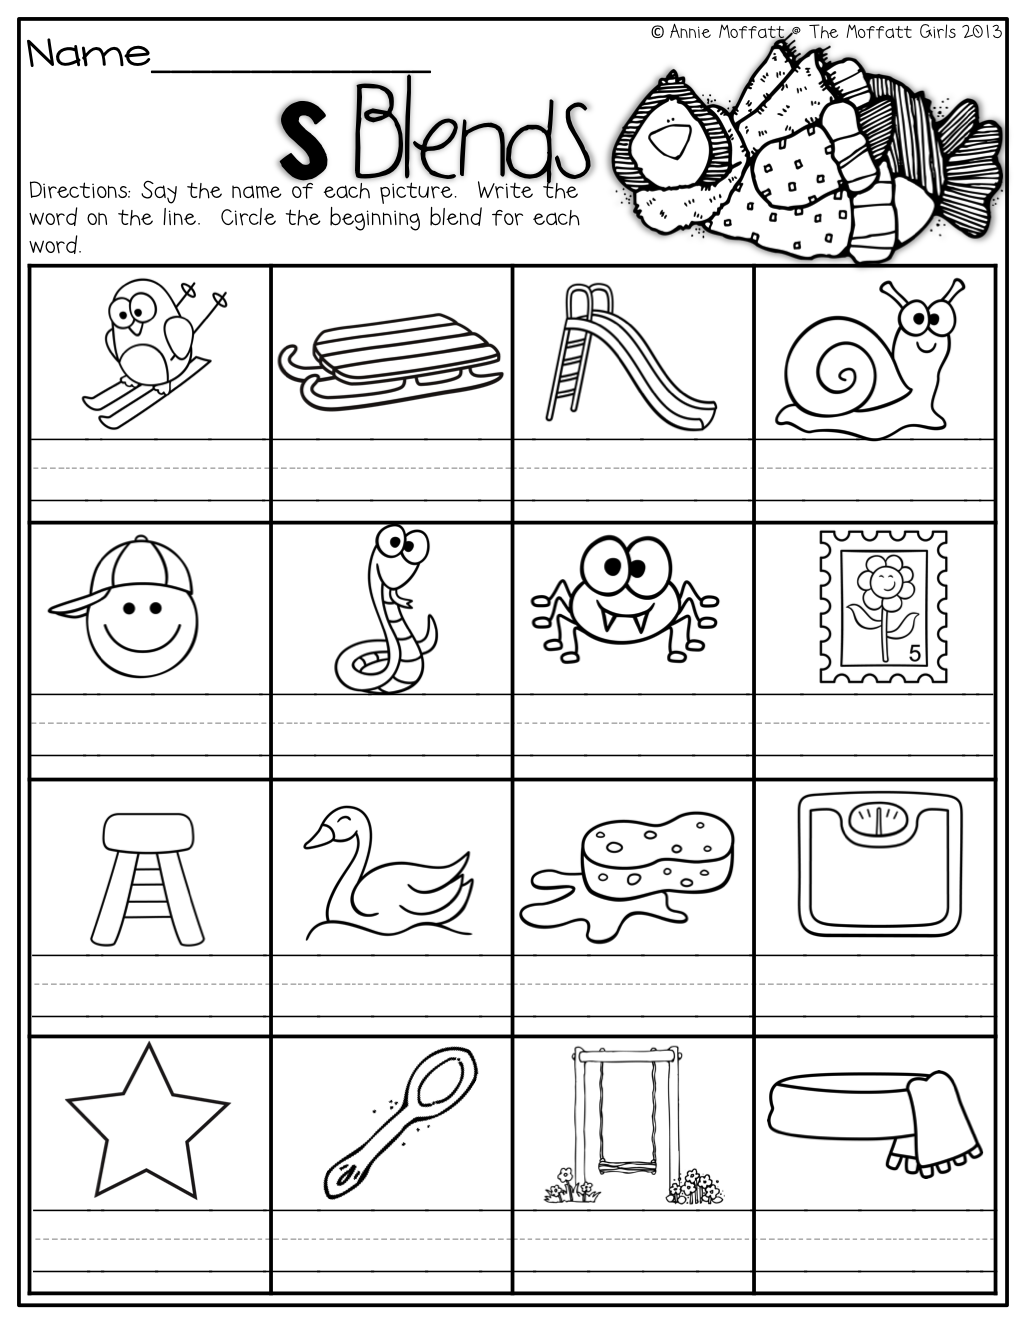 Worksheets S Blend Worksheets s blends 1st grade activities pinterest phonics kindergarten blends